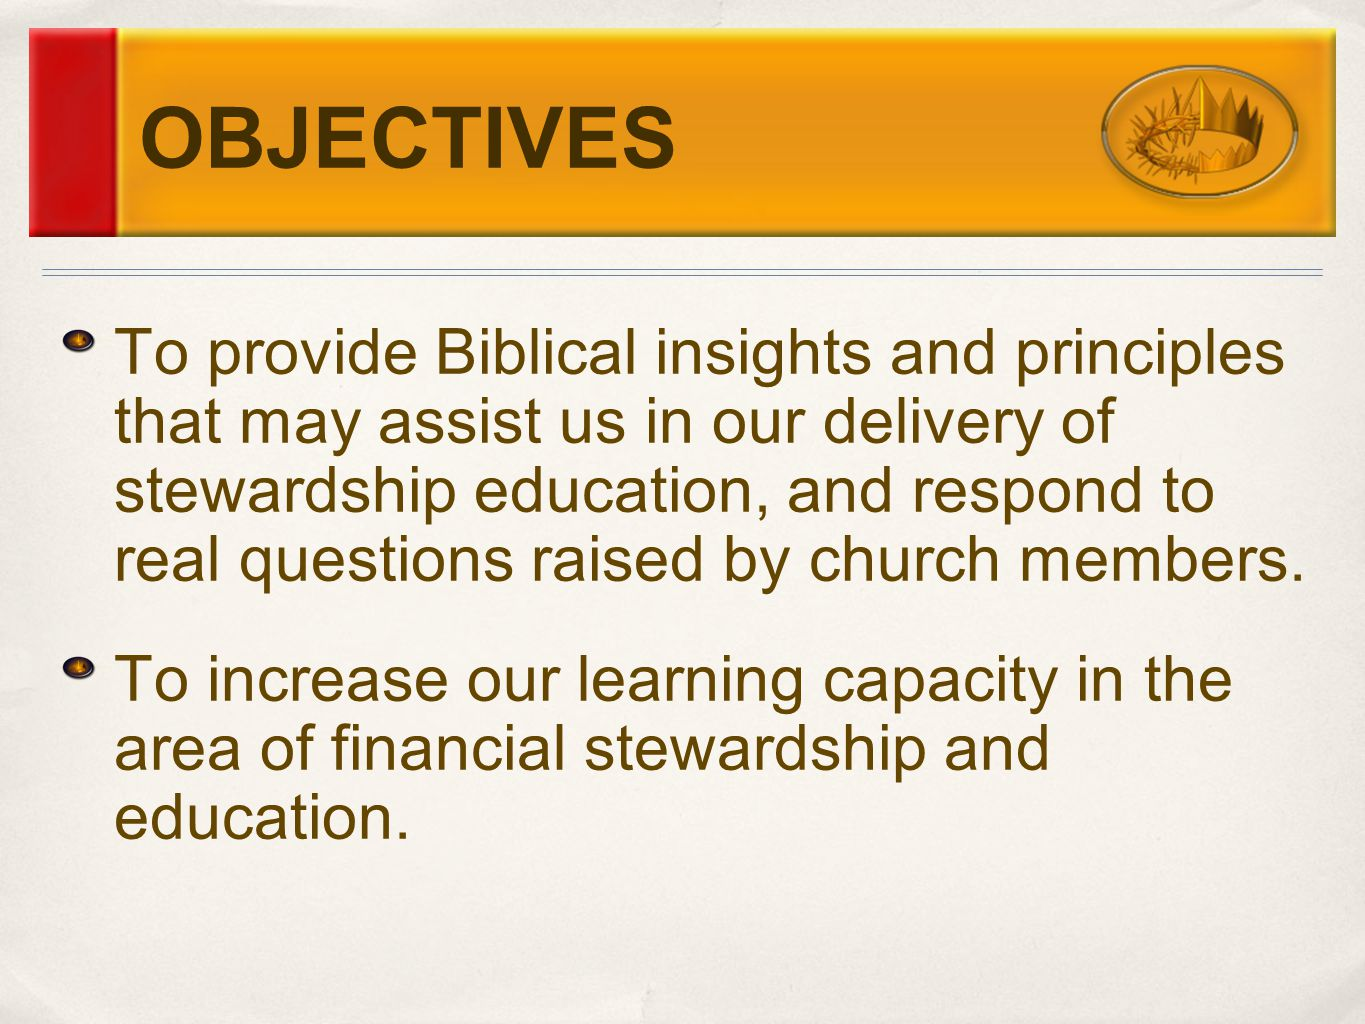 OBJECTIVES To provide Biblical insights and principles that may assist us in our delivery of stewardship education, and respond to real questions raised by church members.